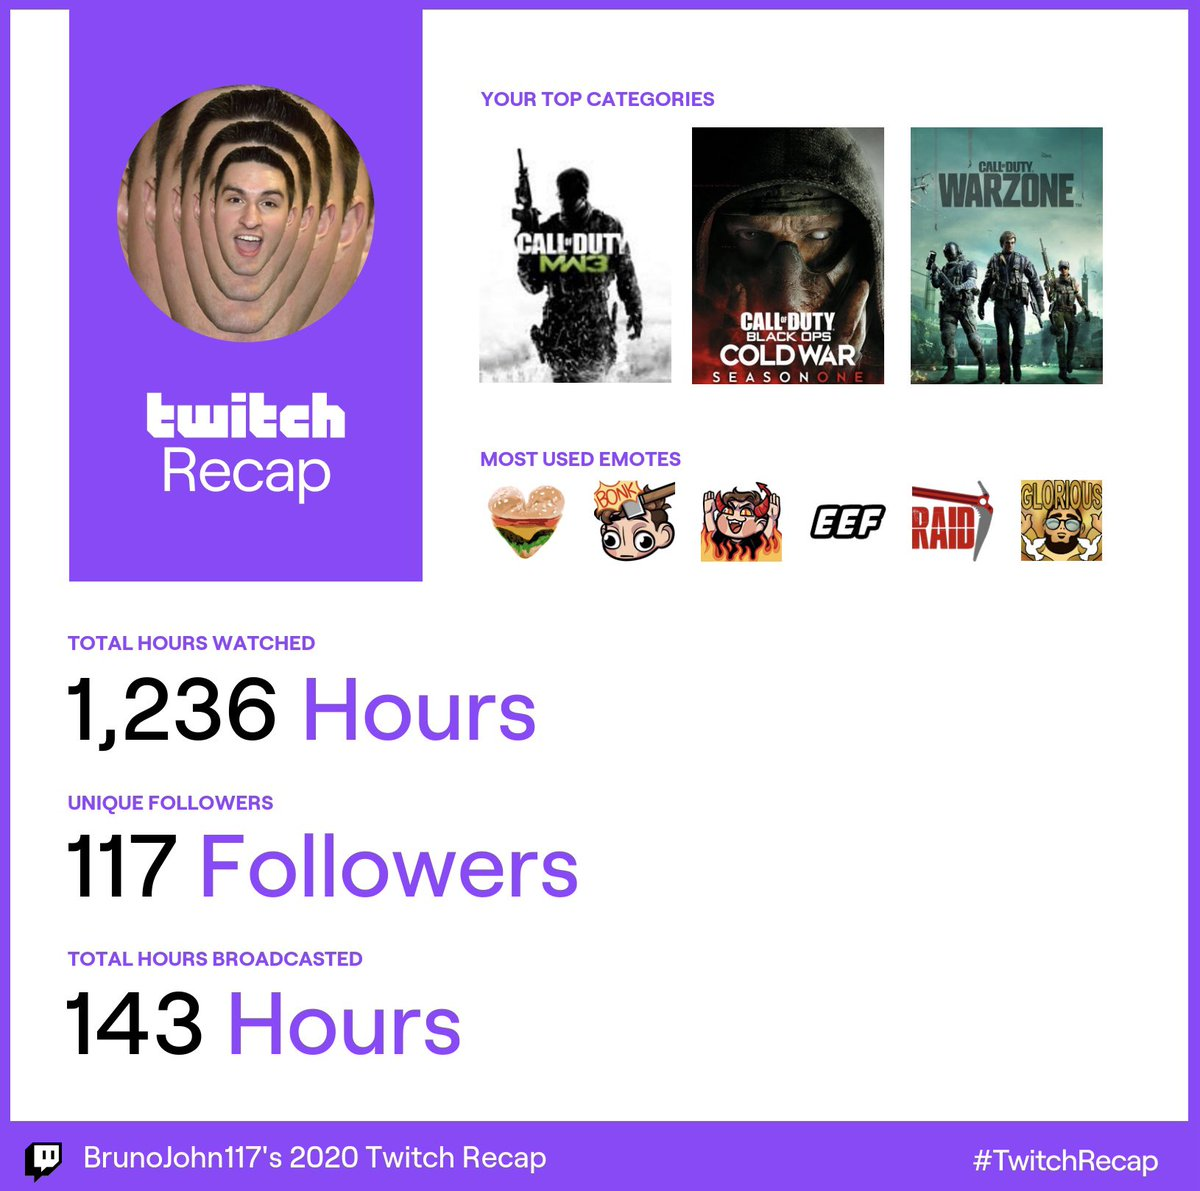 I think we're just getting started... #TwitchRecap